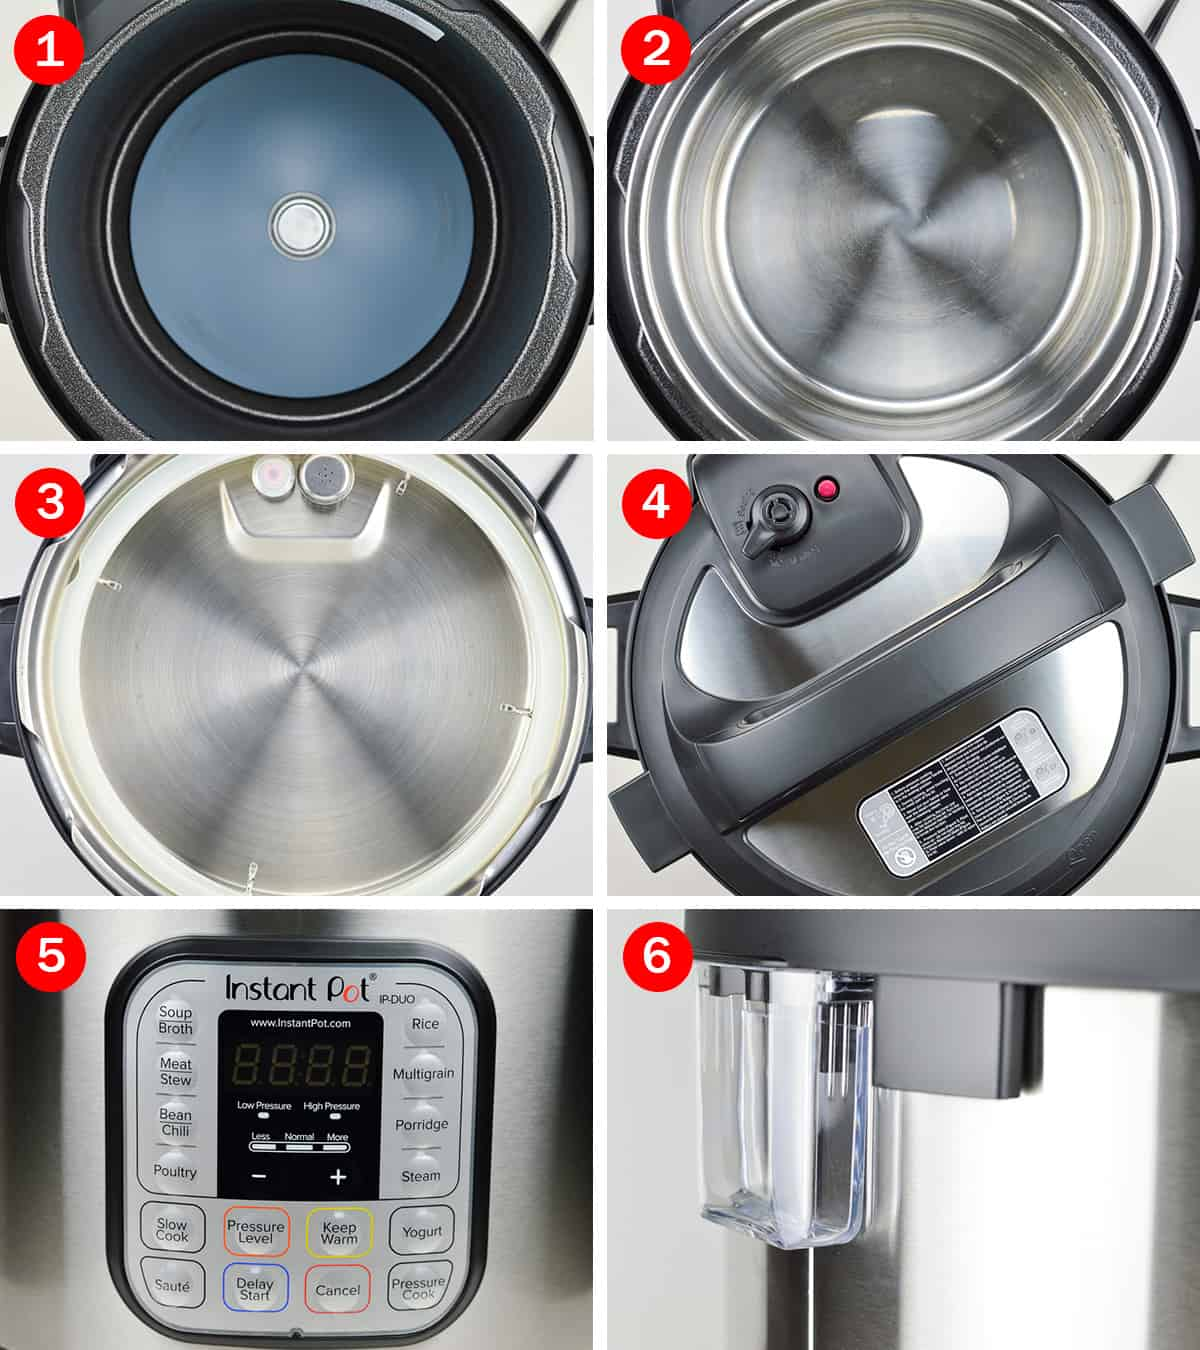 photos of instant pot parts - exterior pot, inner pot, lid, sealing ring, valve, display panel, and condensation collector